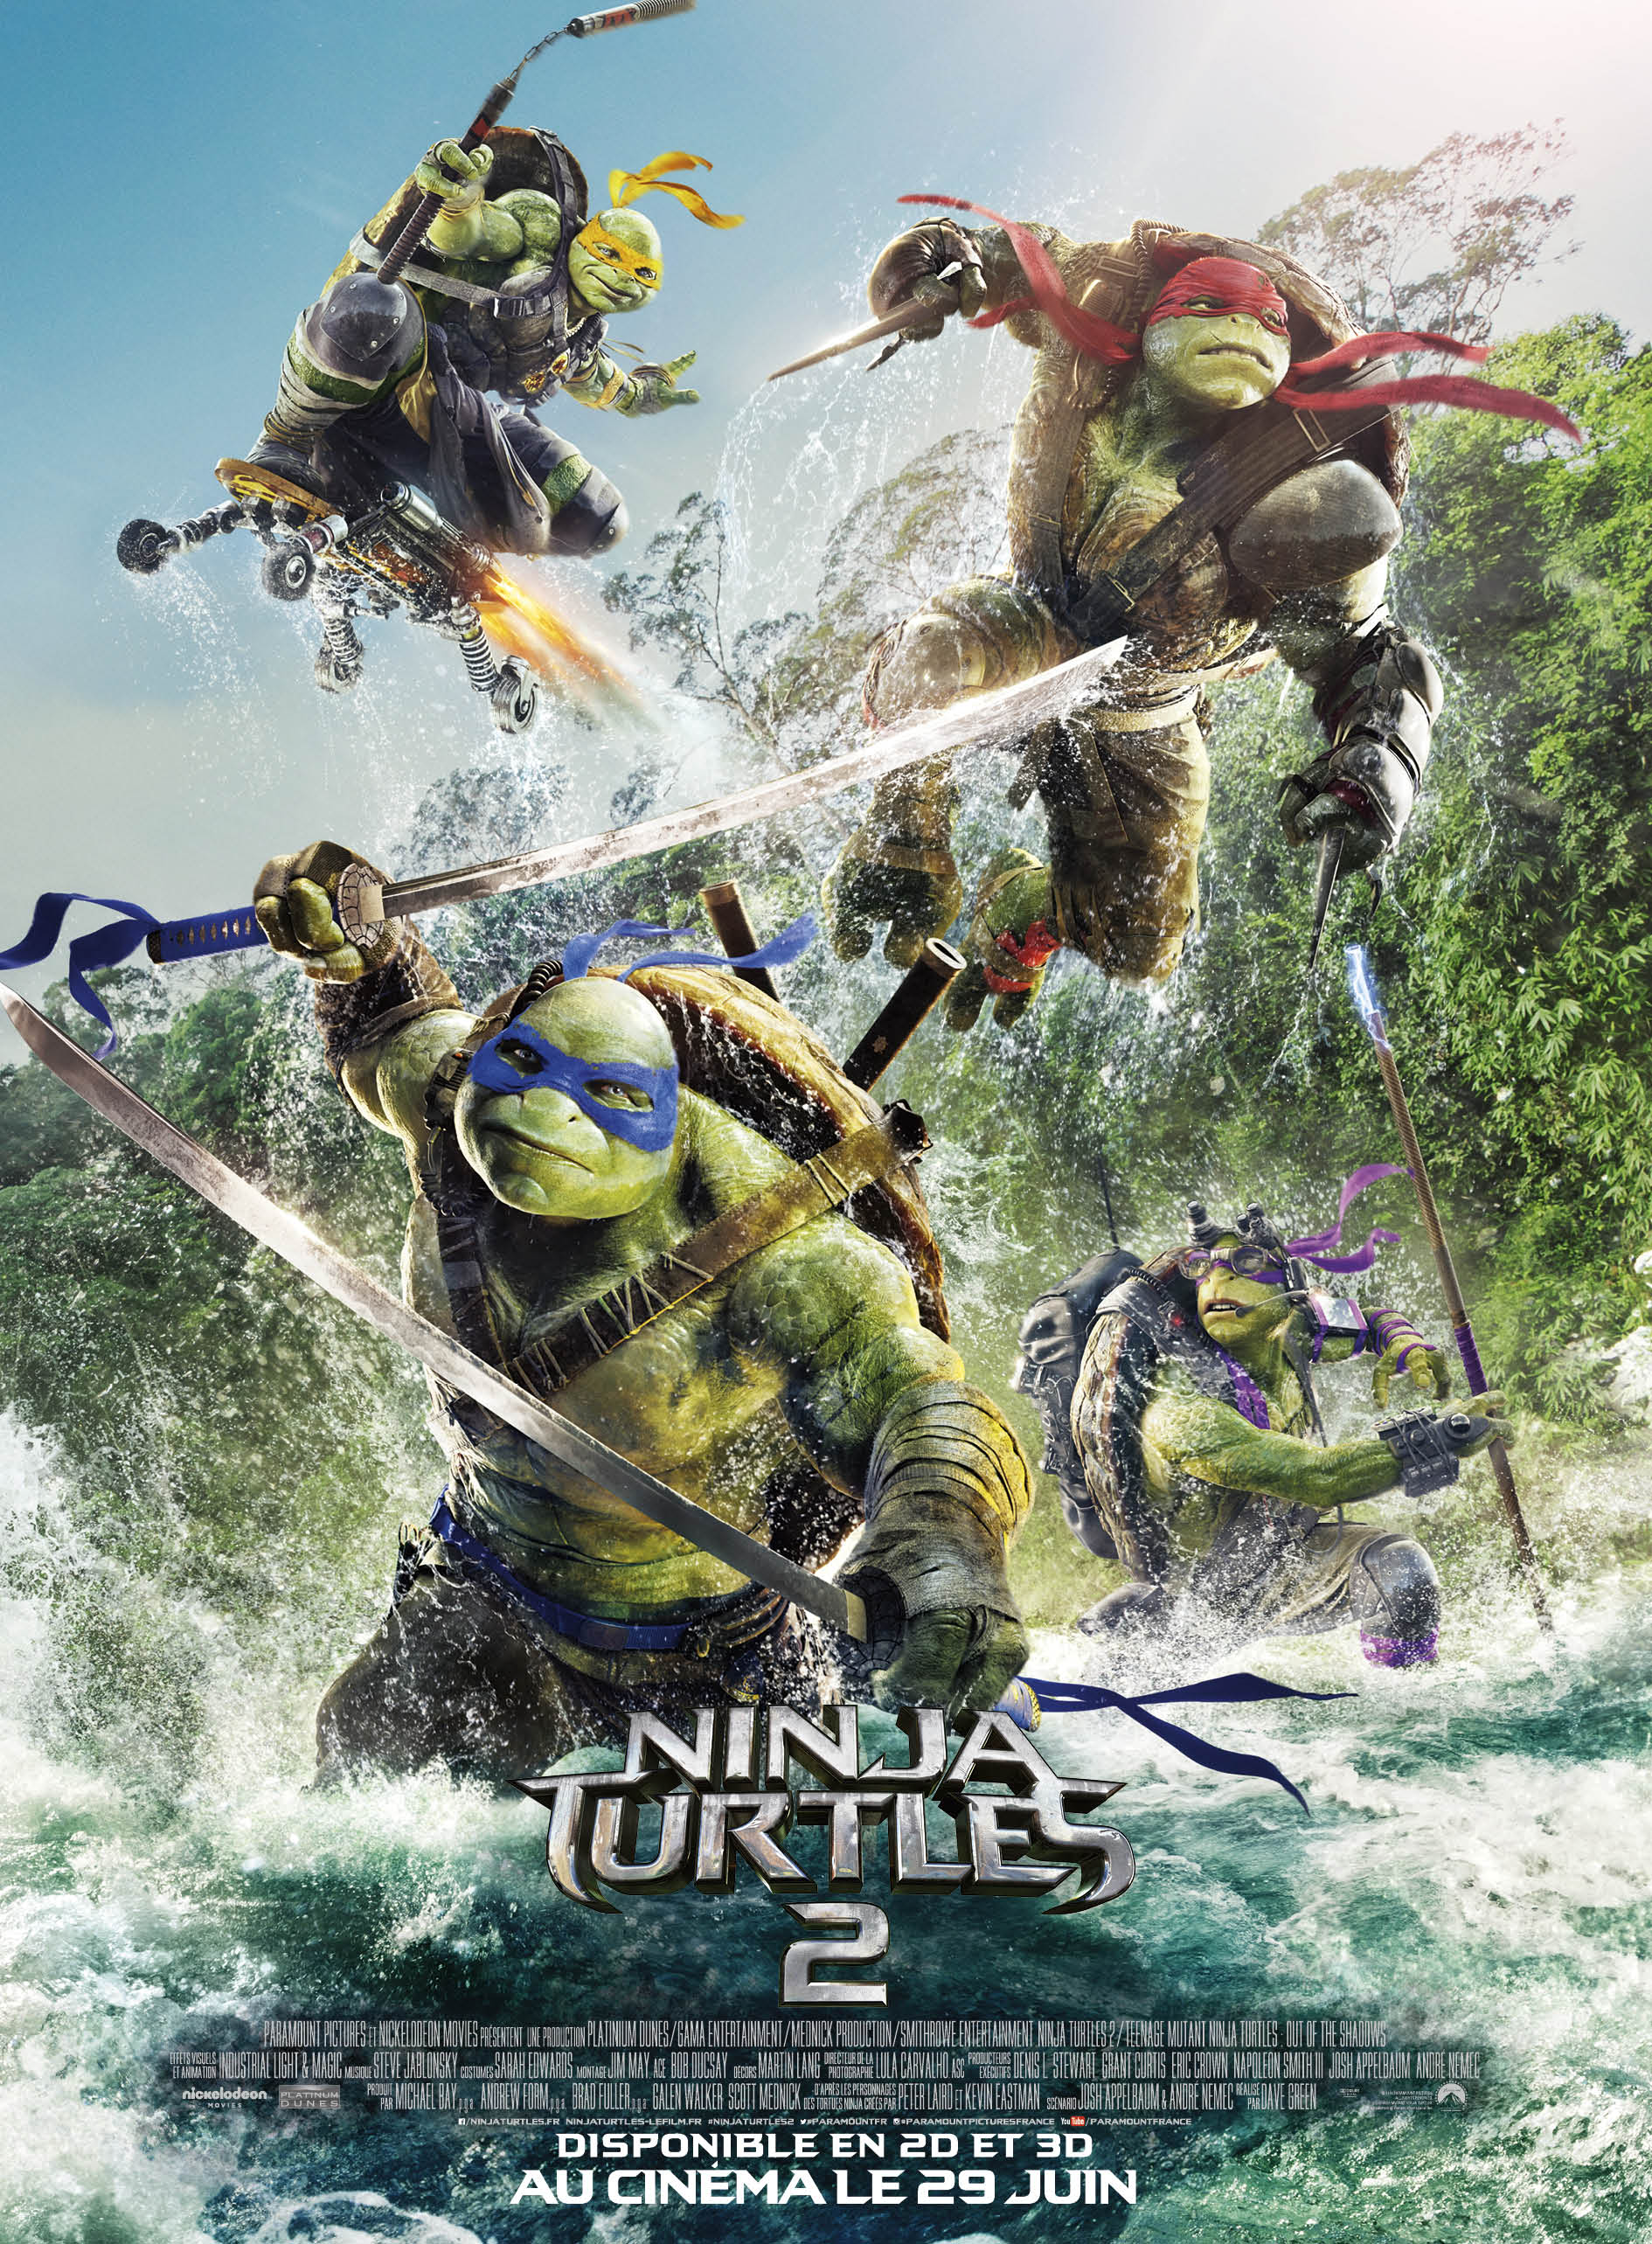 Ninja Turtles 2 ddl